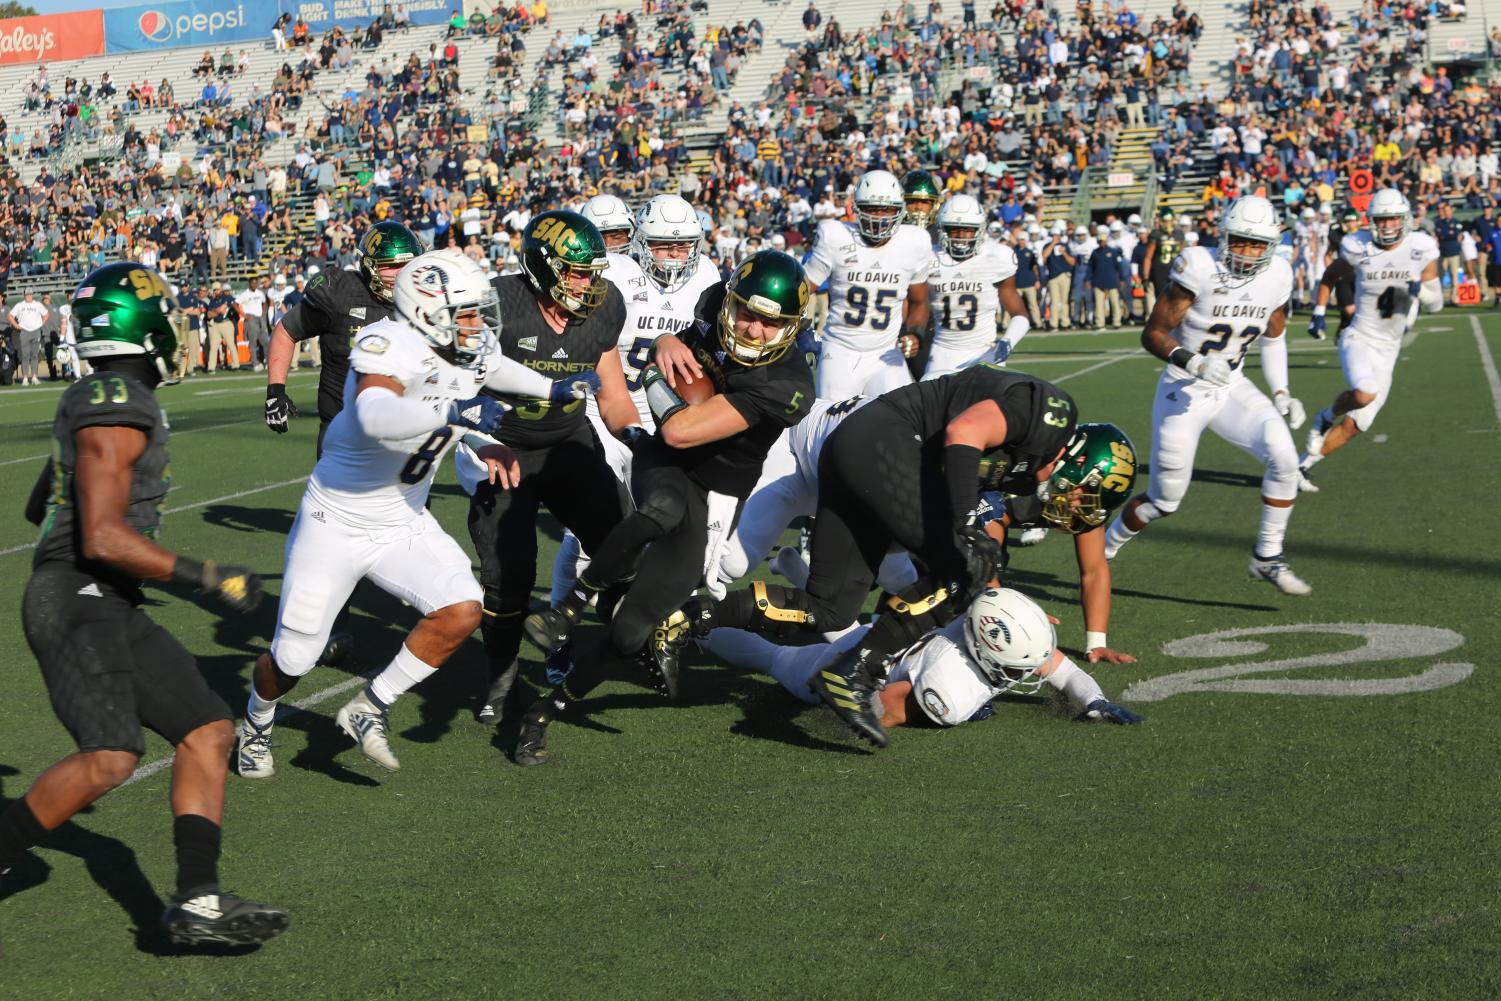 Sac State junior quarterback Kevin Thomson rushes for a first down against UC Davis on Saturday, Nov. 23 at Hornet Stadium. The No. 4 Hornets host the second round of the FCS Playoffs against Austin Peay on Saturday at 6 p.m.